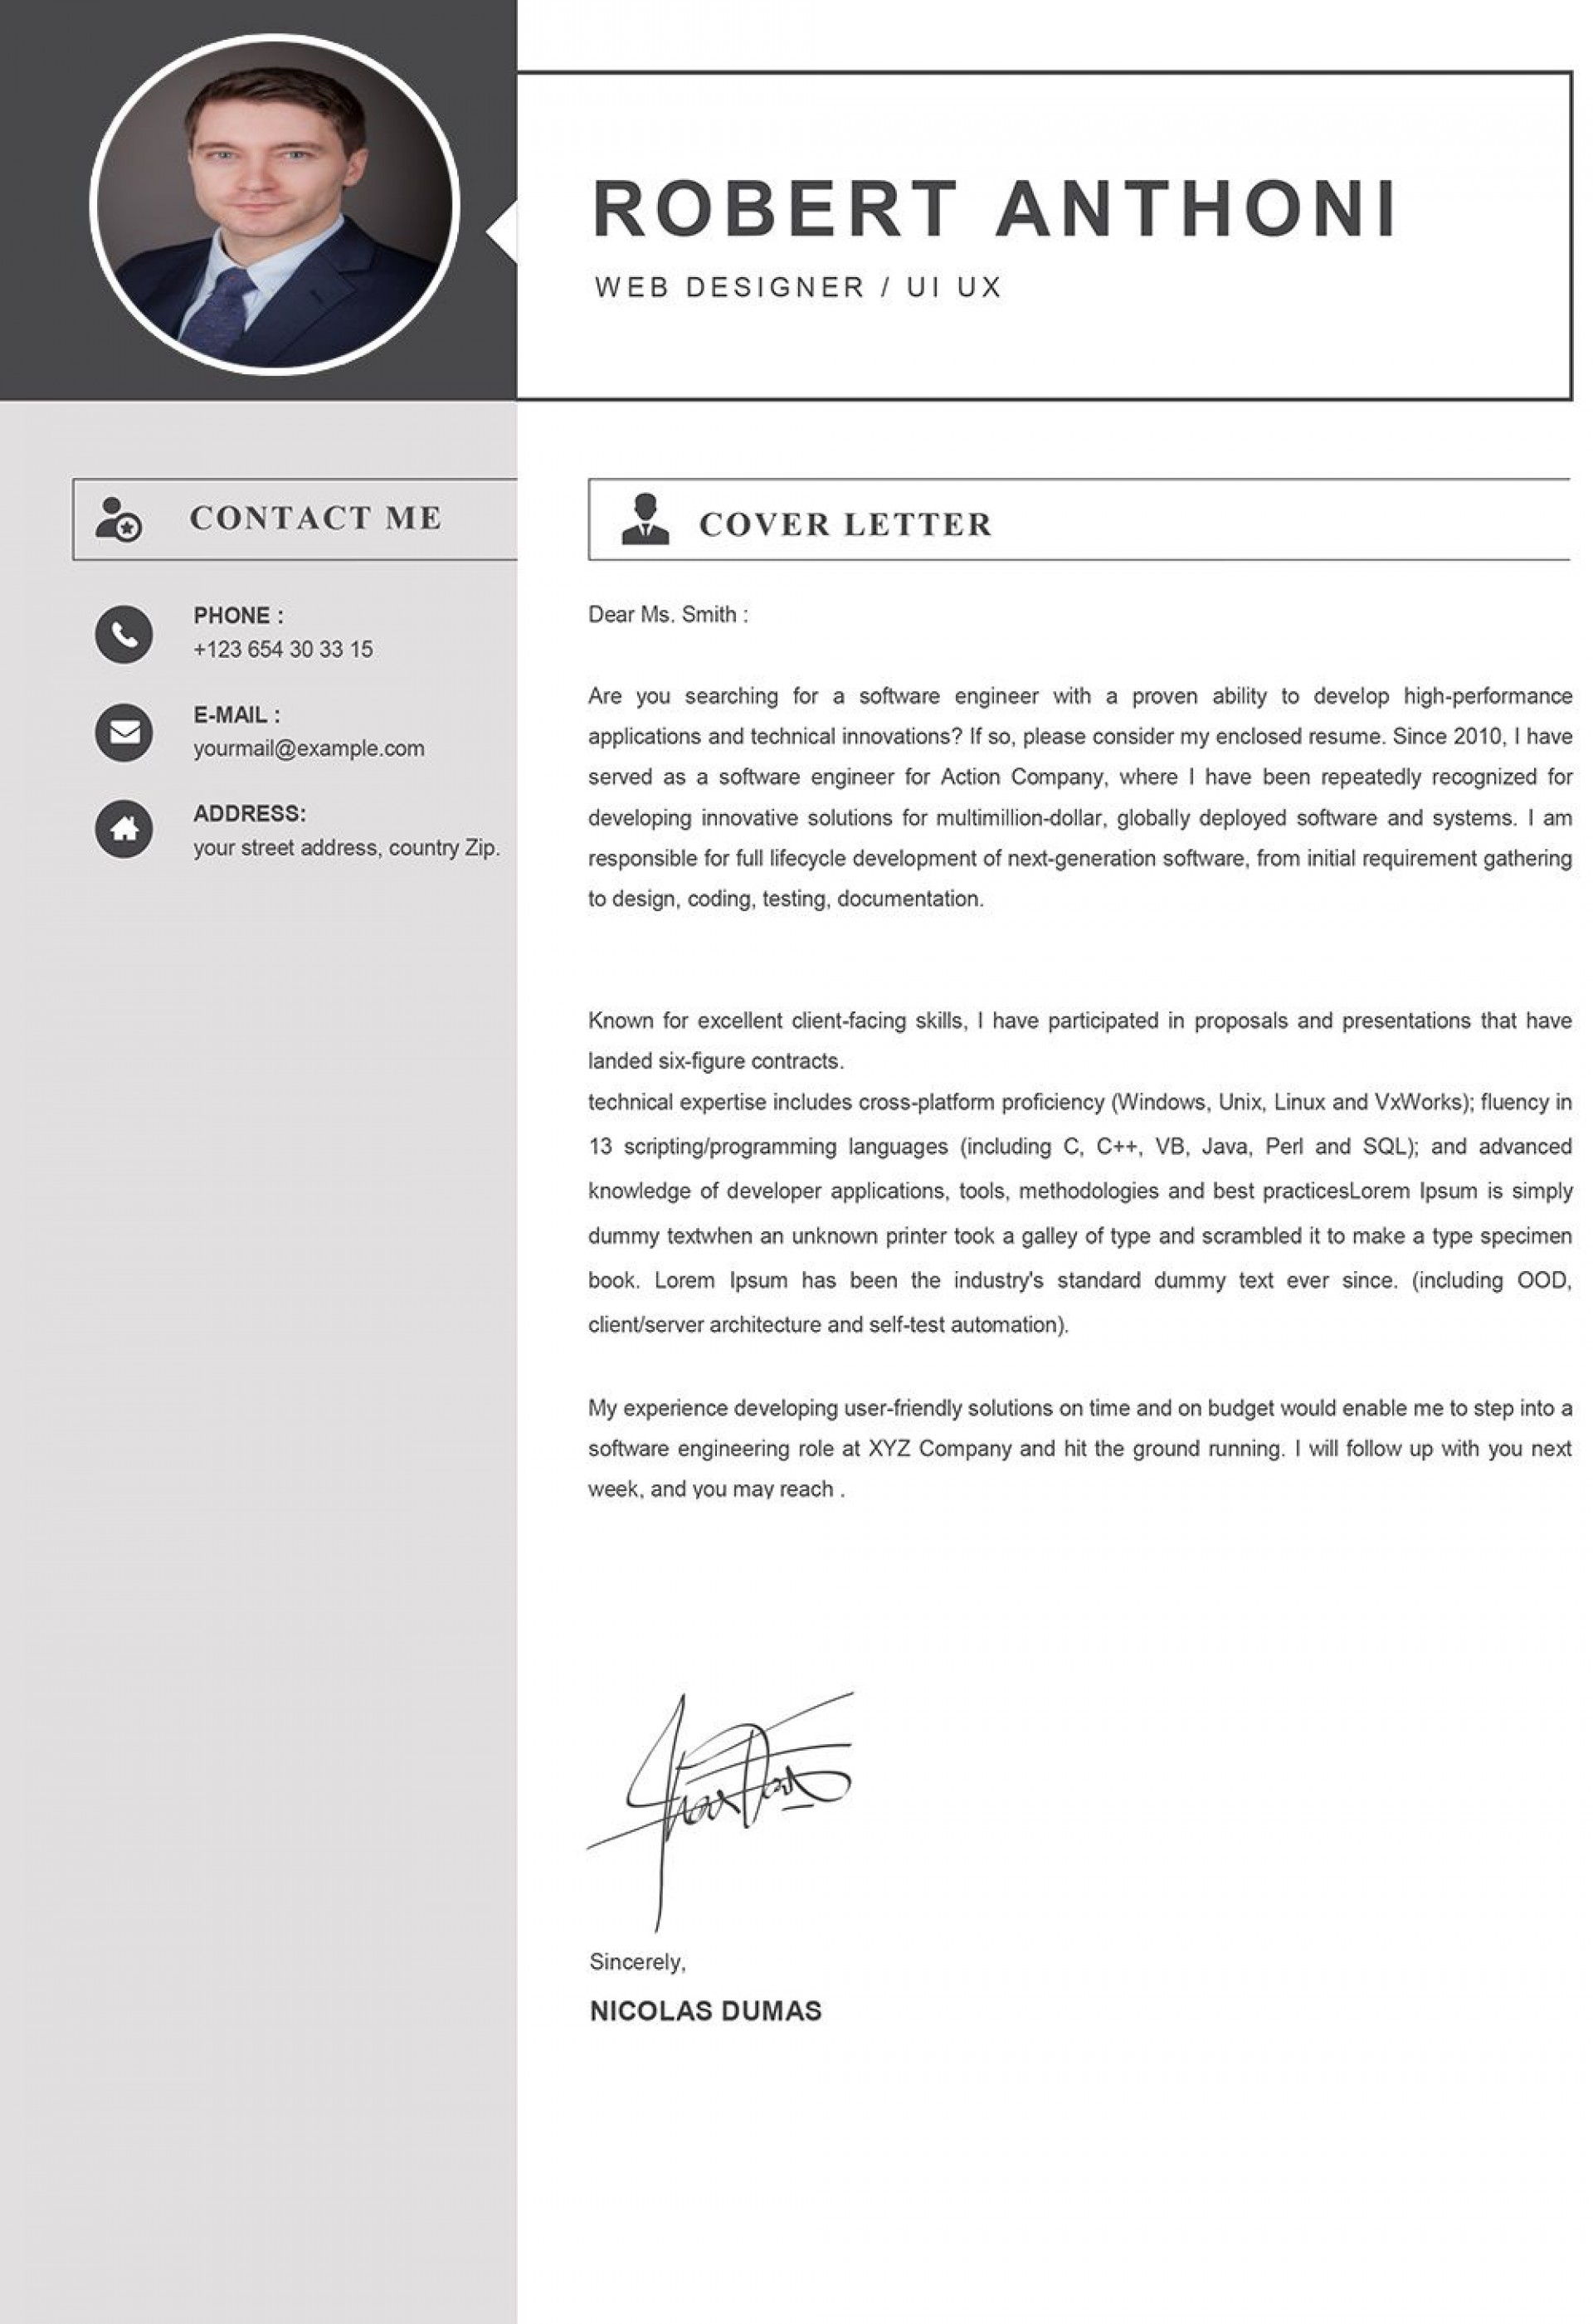 000 Exceptional Microsoft Cover Letter Template Download Highest Clarity  Word Free1920